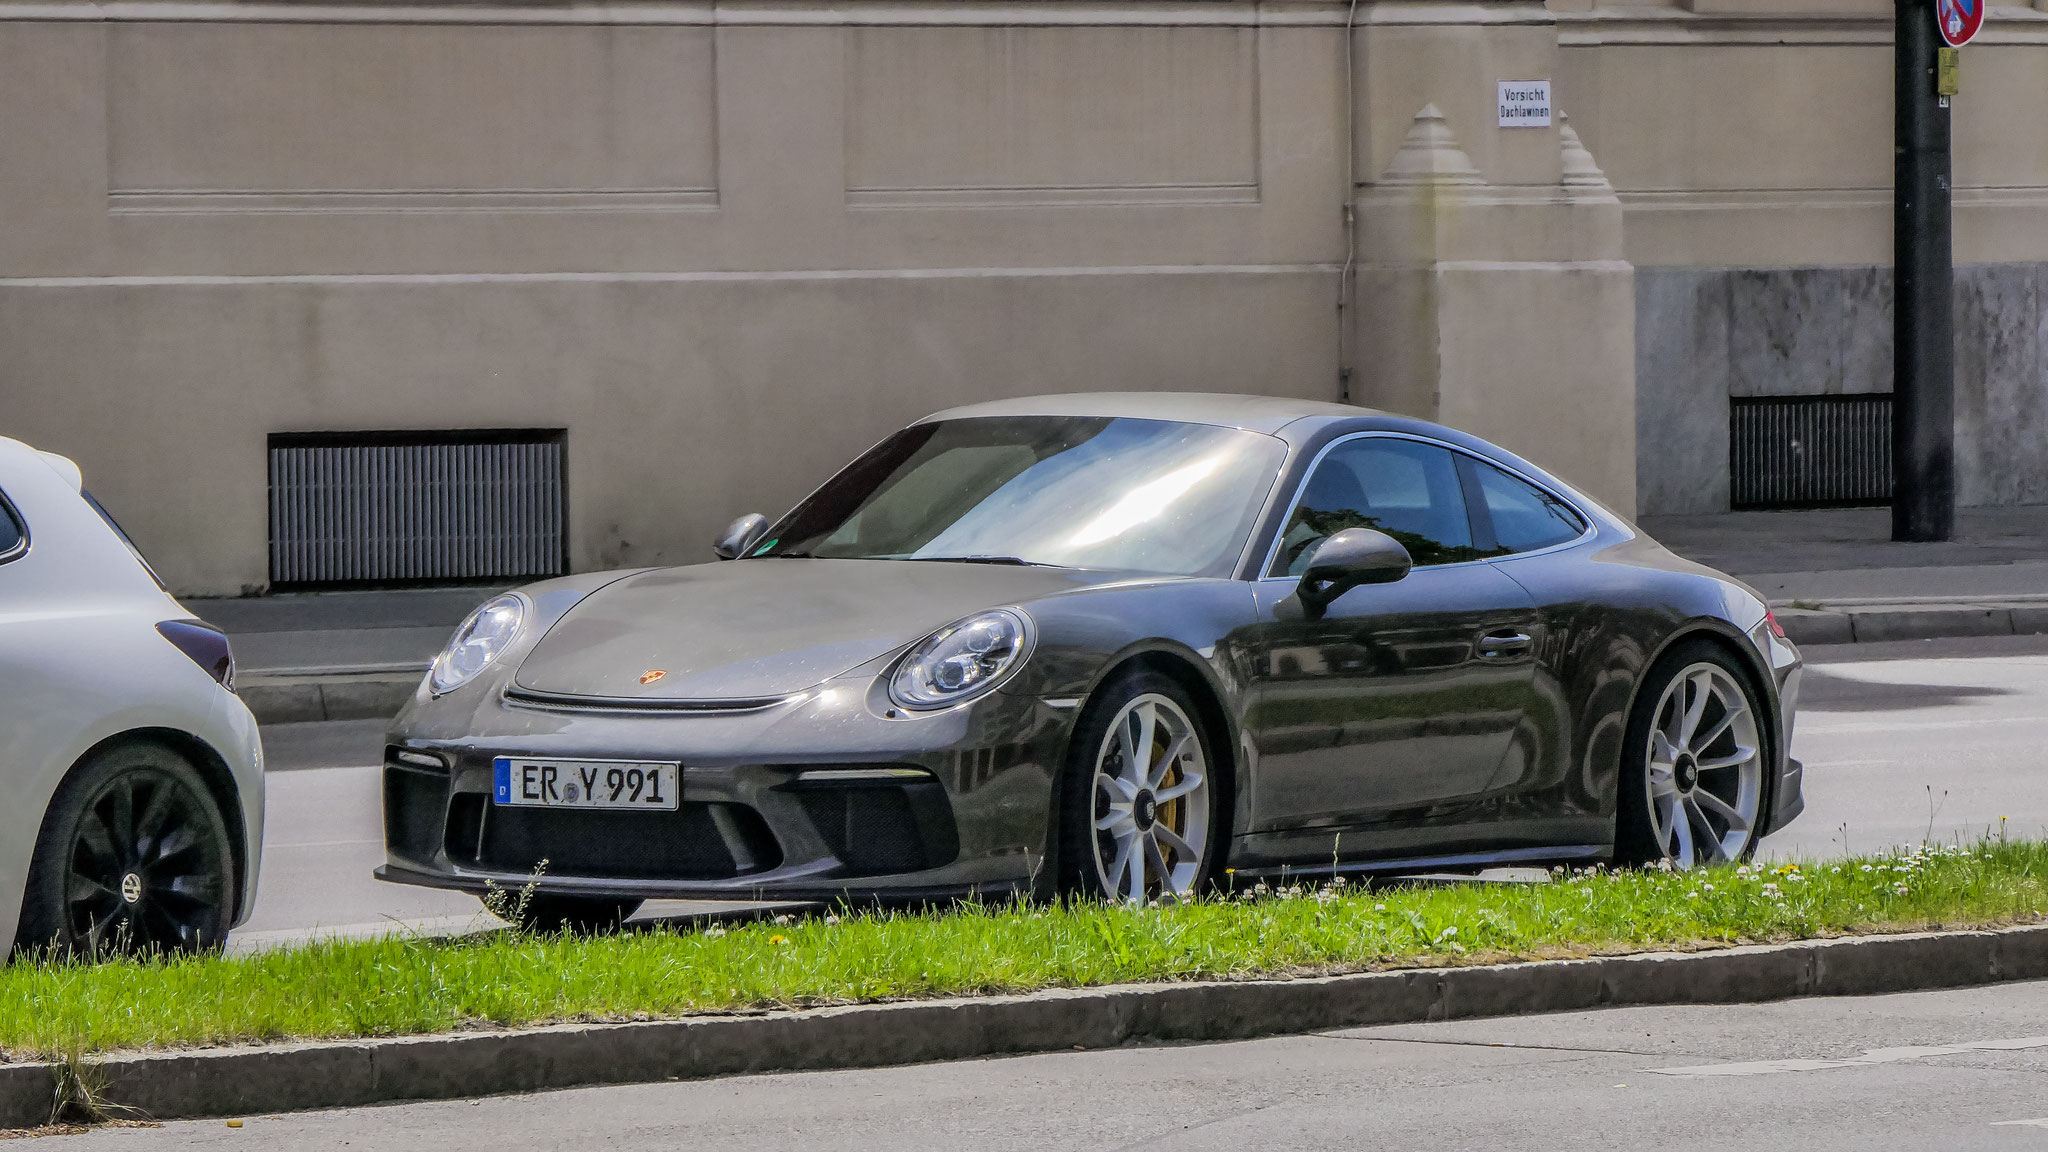 Porsche 991 GT3 Touring Package - ER-Y-991